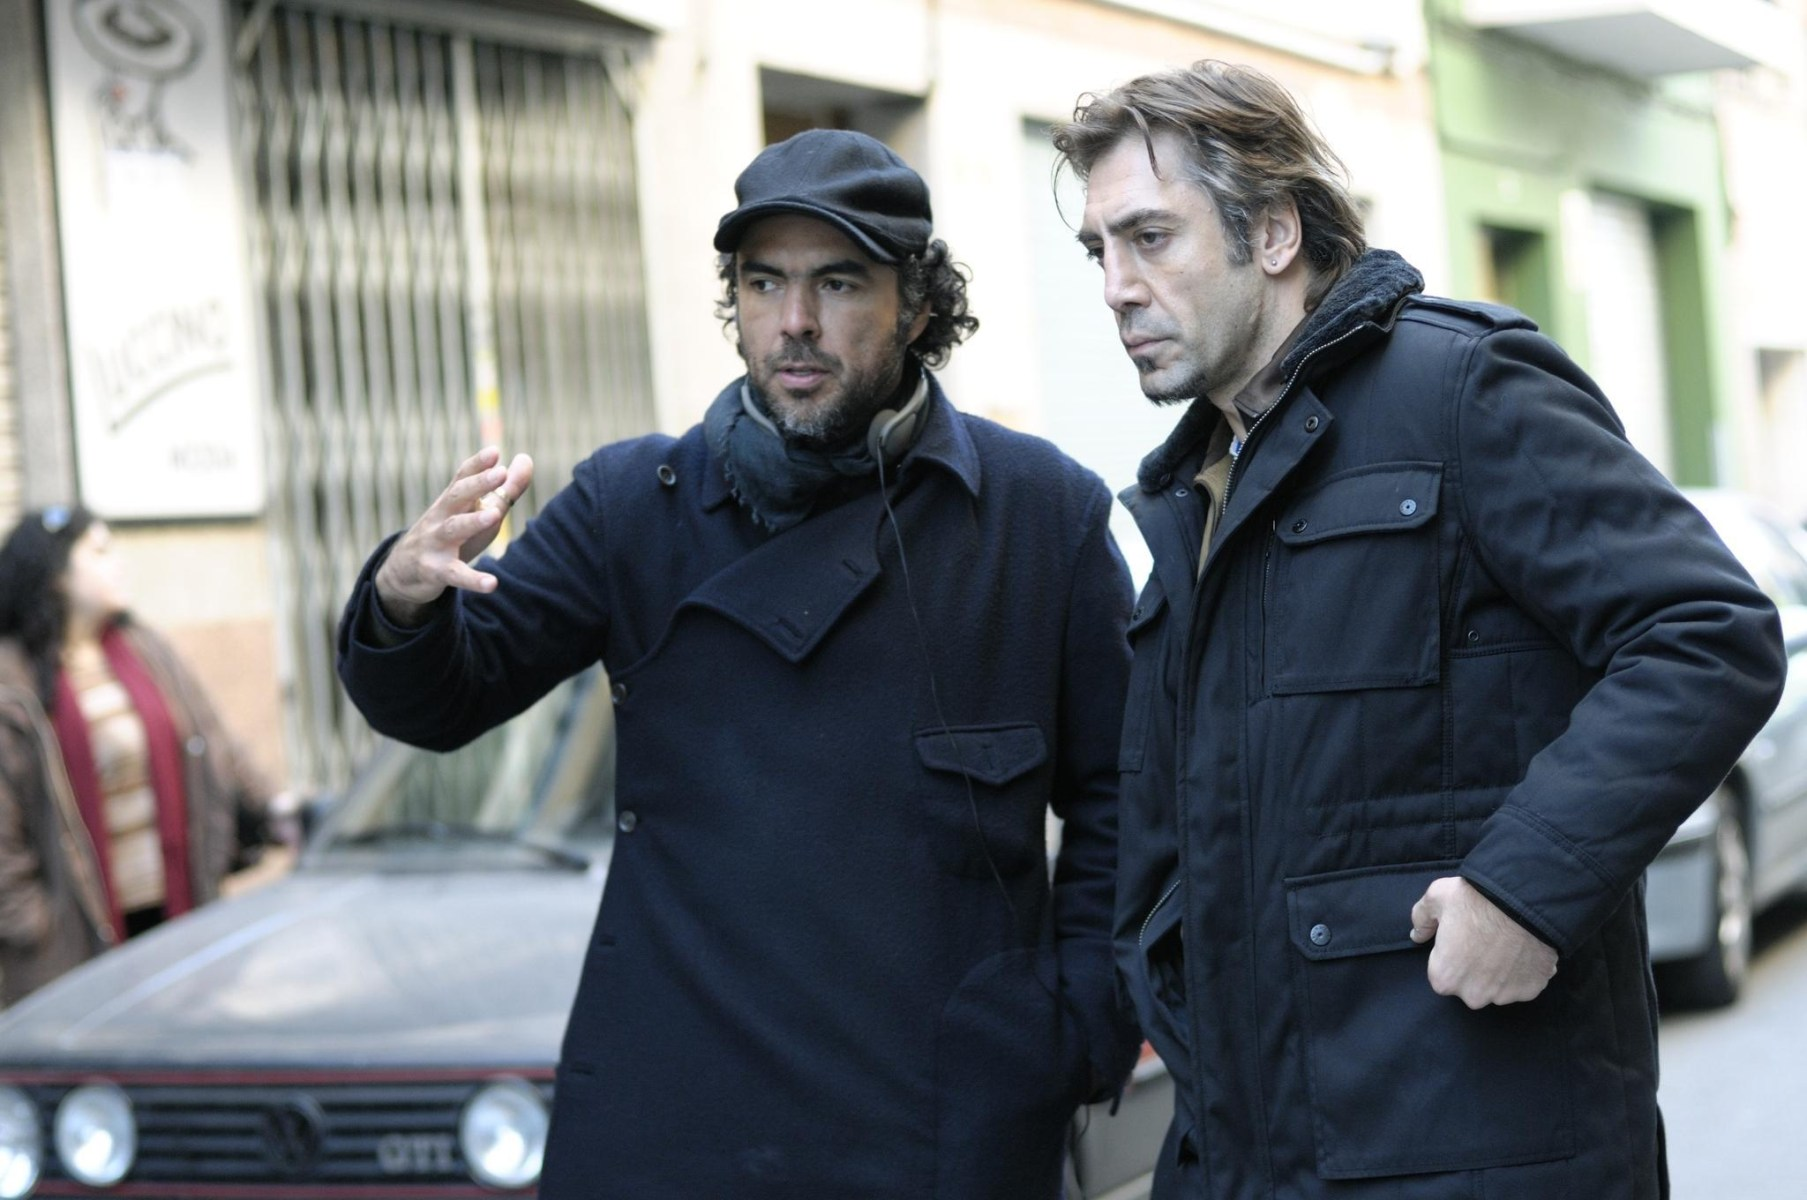 Biutiful Behind the Scenes Photos & Tech Specs